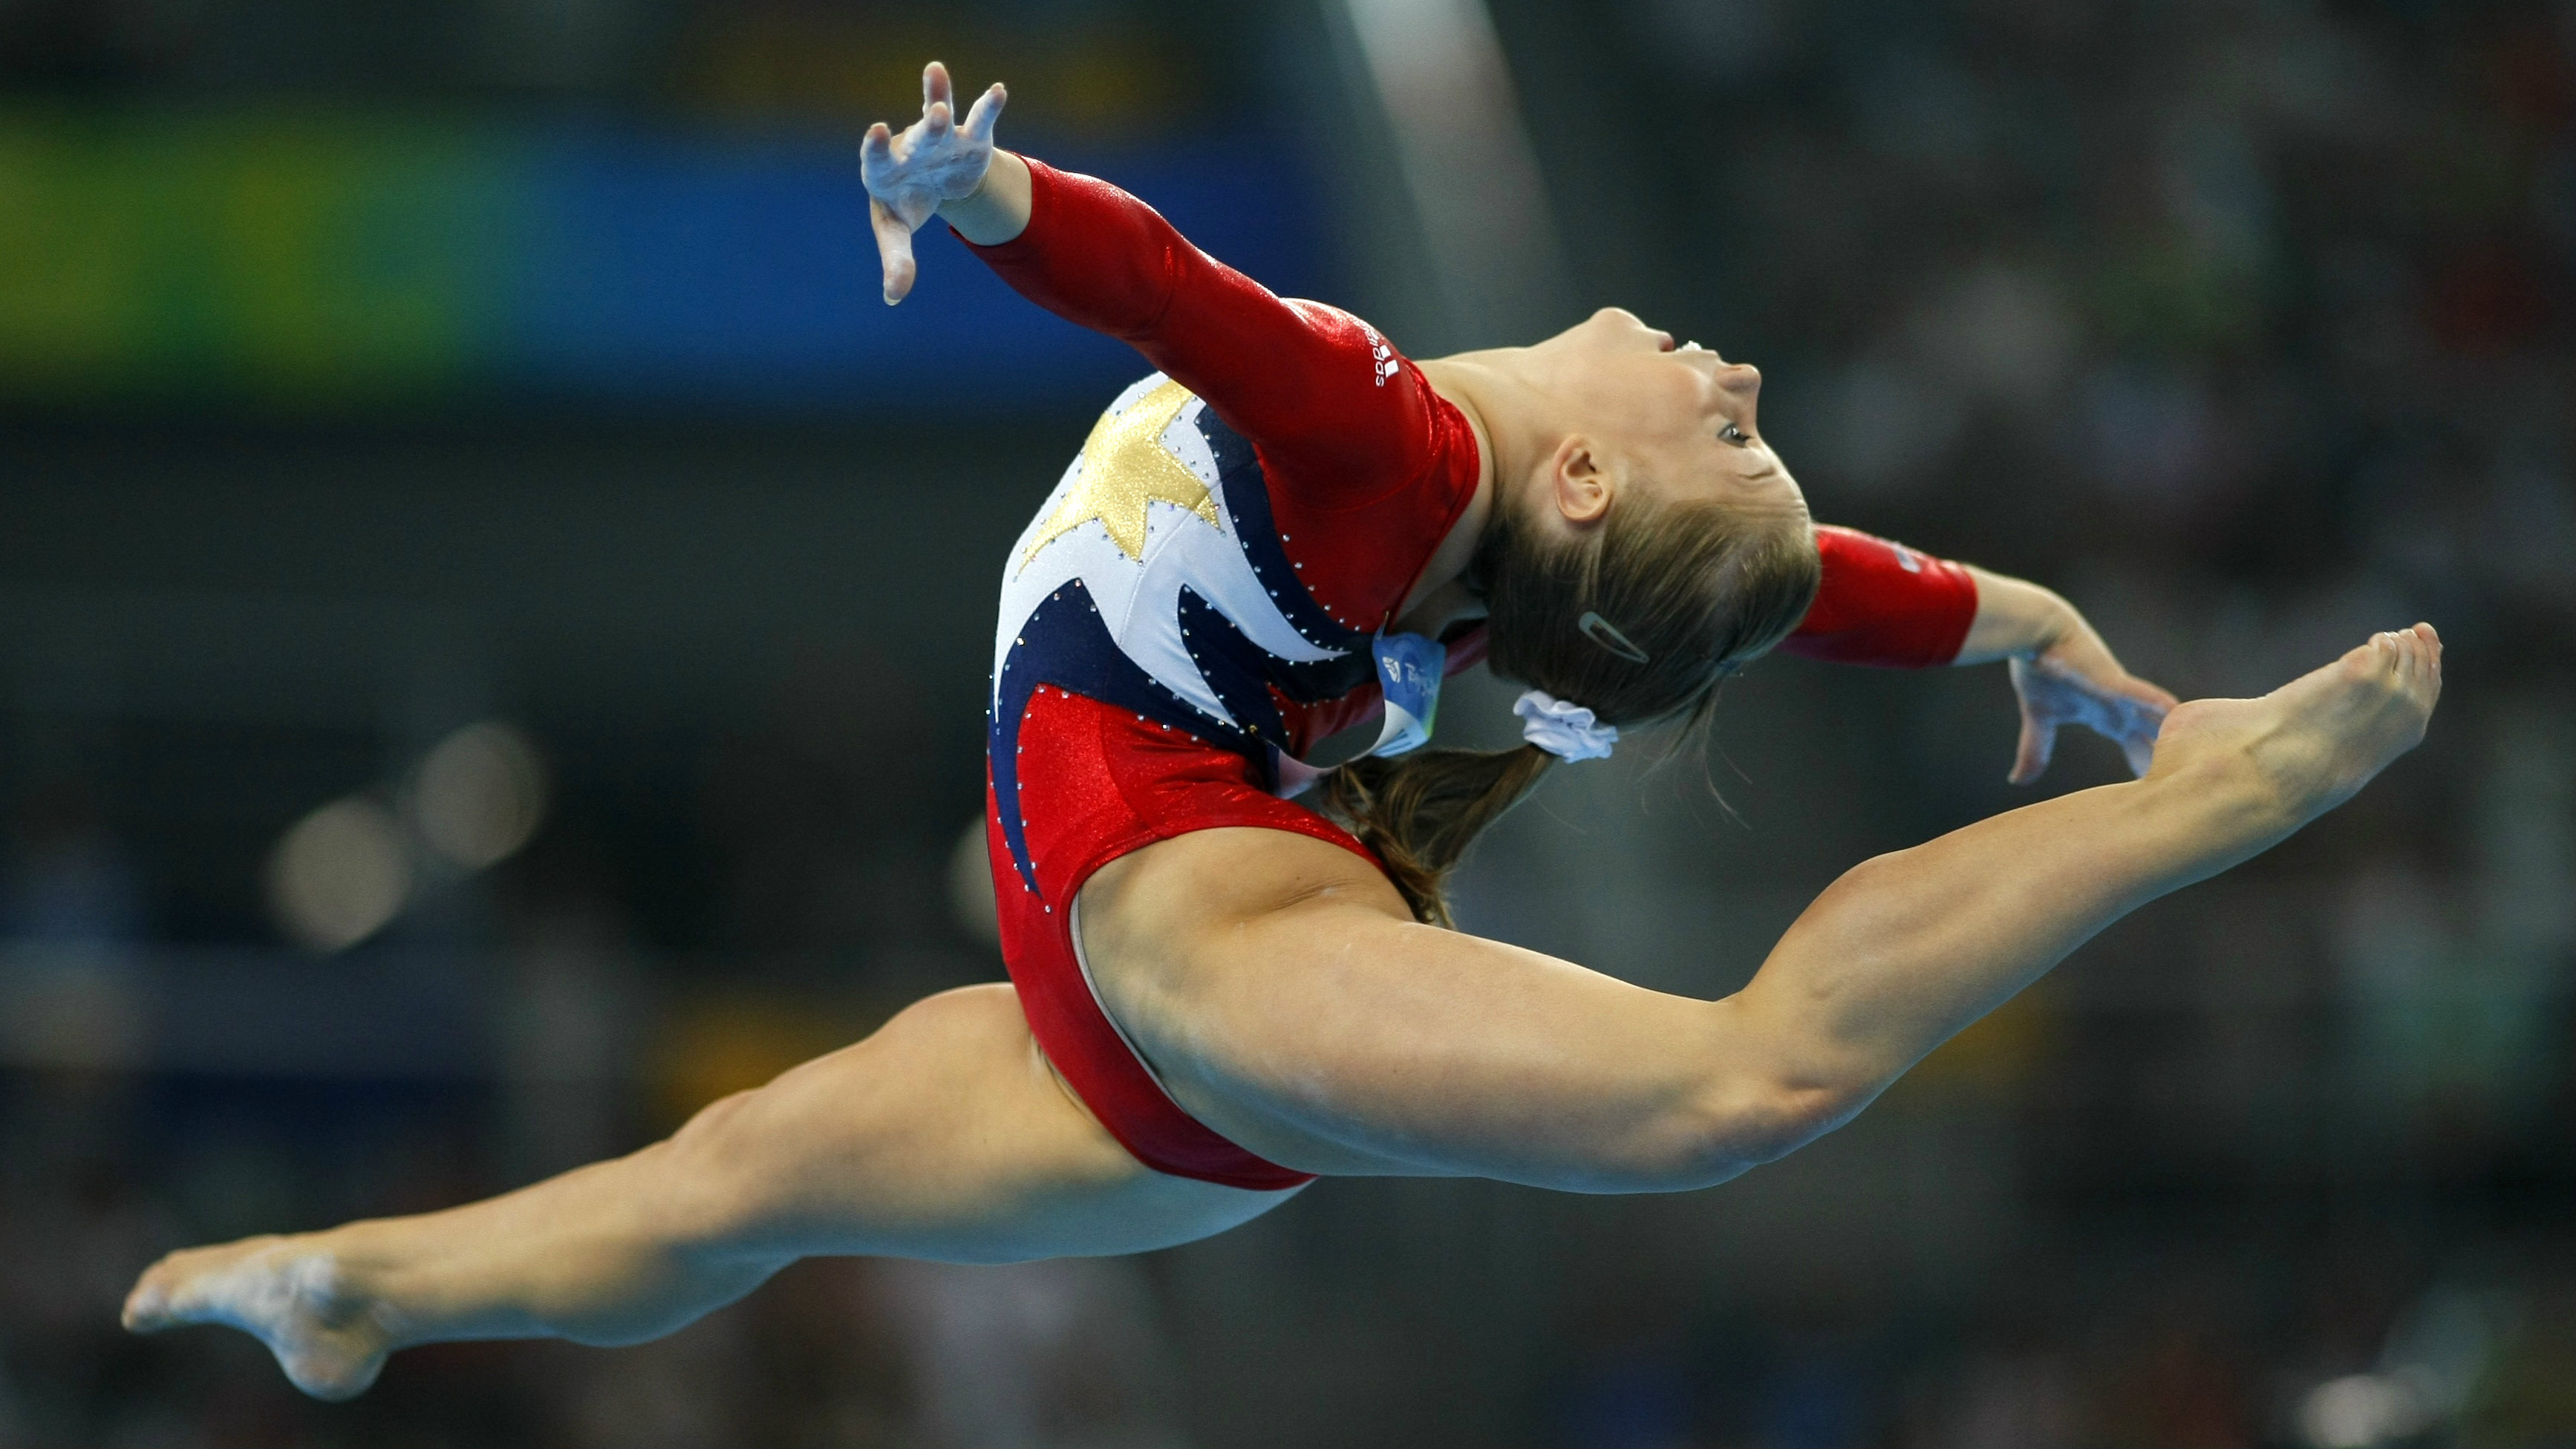 Shawn Johnson of the U.S. competes in the women's qualification floor exercise during the artistic gymnastics competition at the Beijing 2008 Olympic Games August 10, 2008. REUTERS/Mike Blake